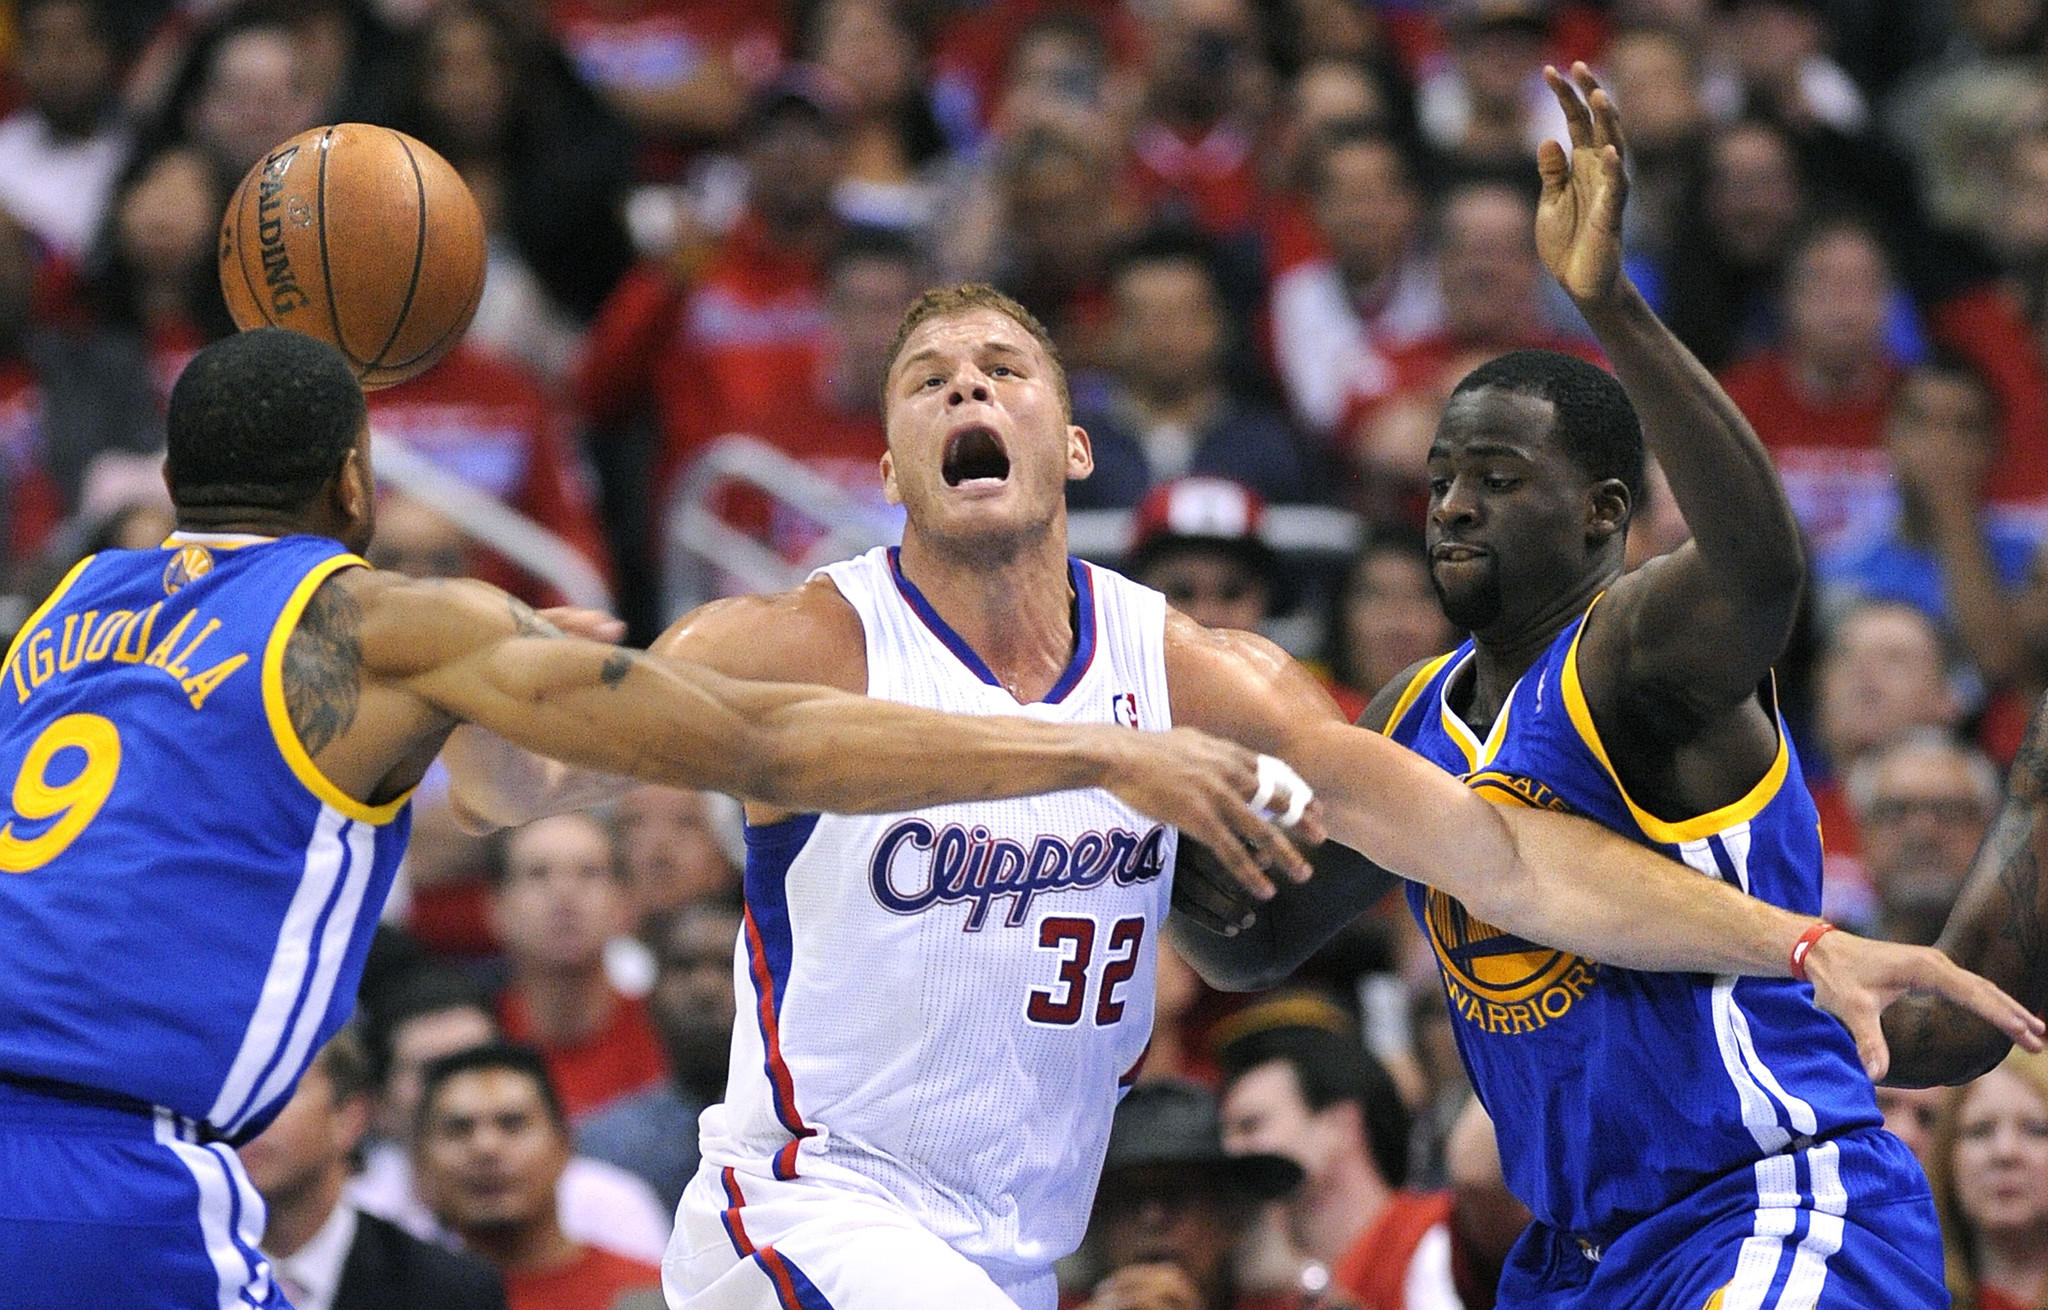 Blake Griffin loses control of the ball against the Warriors' Andre Iguodala, left, and Draymond Green in Game 2 of their first-round playoff series at Staples Center.